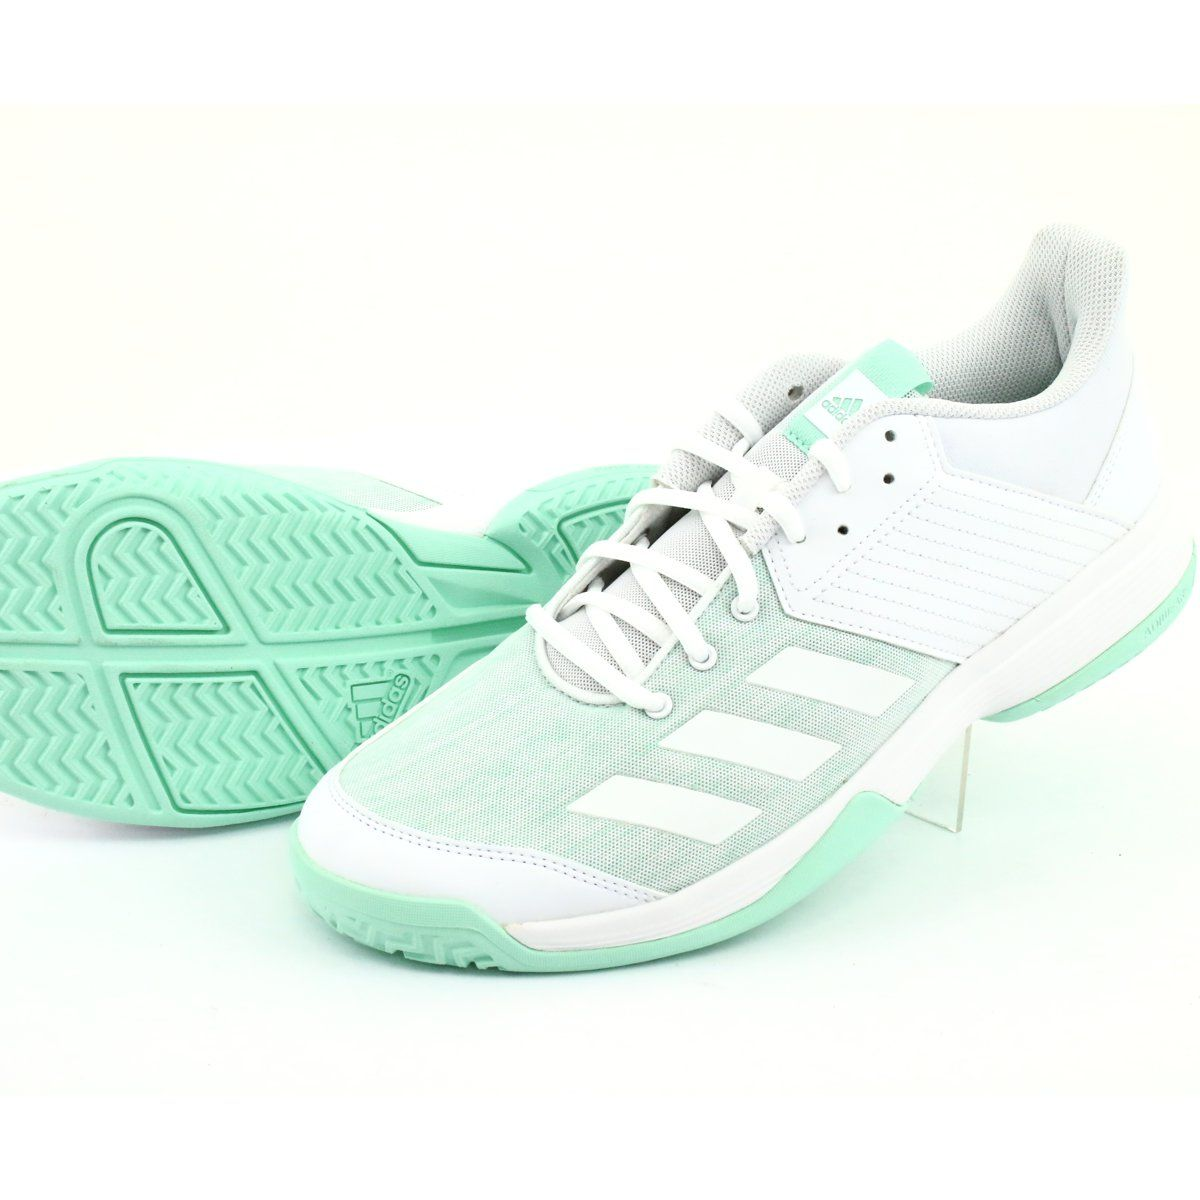 Adidas Ligra 6 W Bc1035 Shoes Volleyball Shoes Mens Volleyball Shoes Shoes